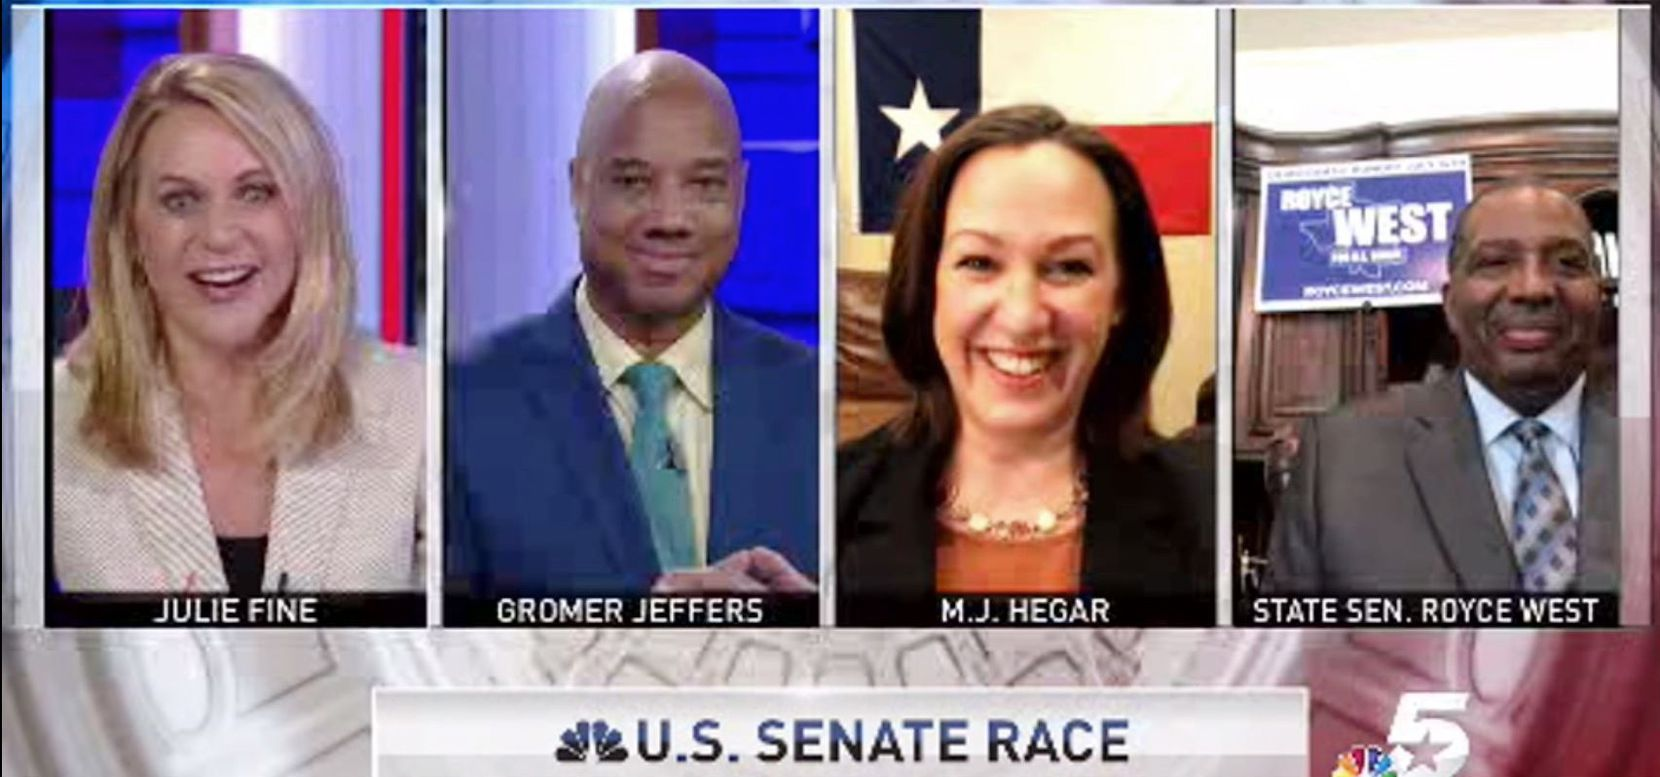 Democratic U.S. Senate candidates Texas Senator Royce West, left, and Veteran Air Force Pilot M.J. Hegar, are appearing Sunday moring at 8:30 AM on NBC5 week's Lone Star Politics with NBC5's Julie Fine and The Dallas Morning News' Gromer Jeffers. (NBC5 screen shot)